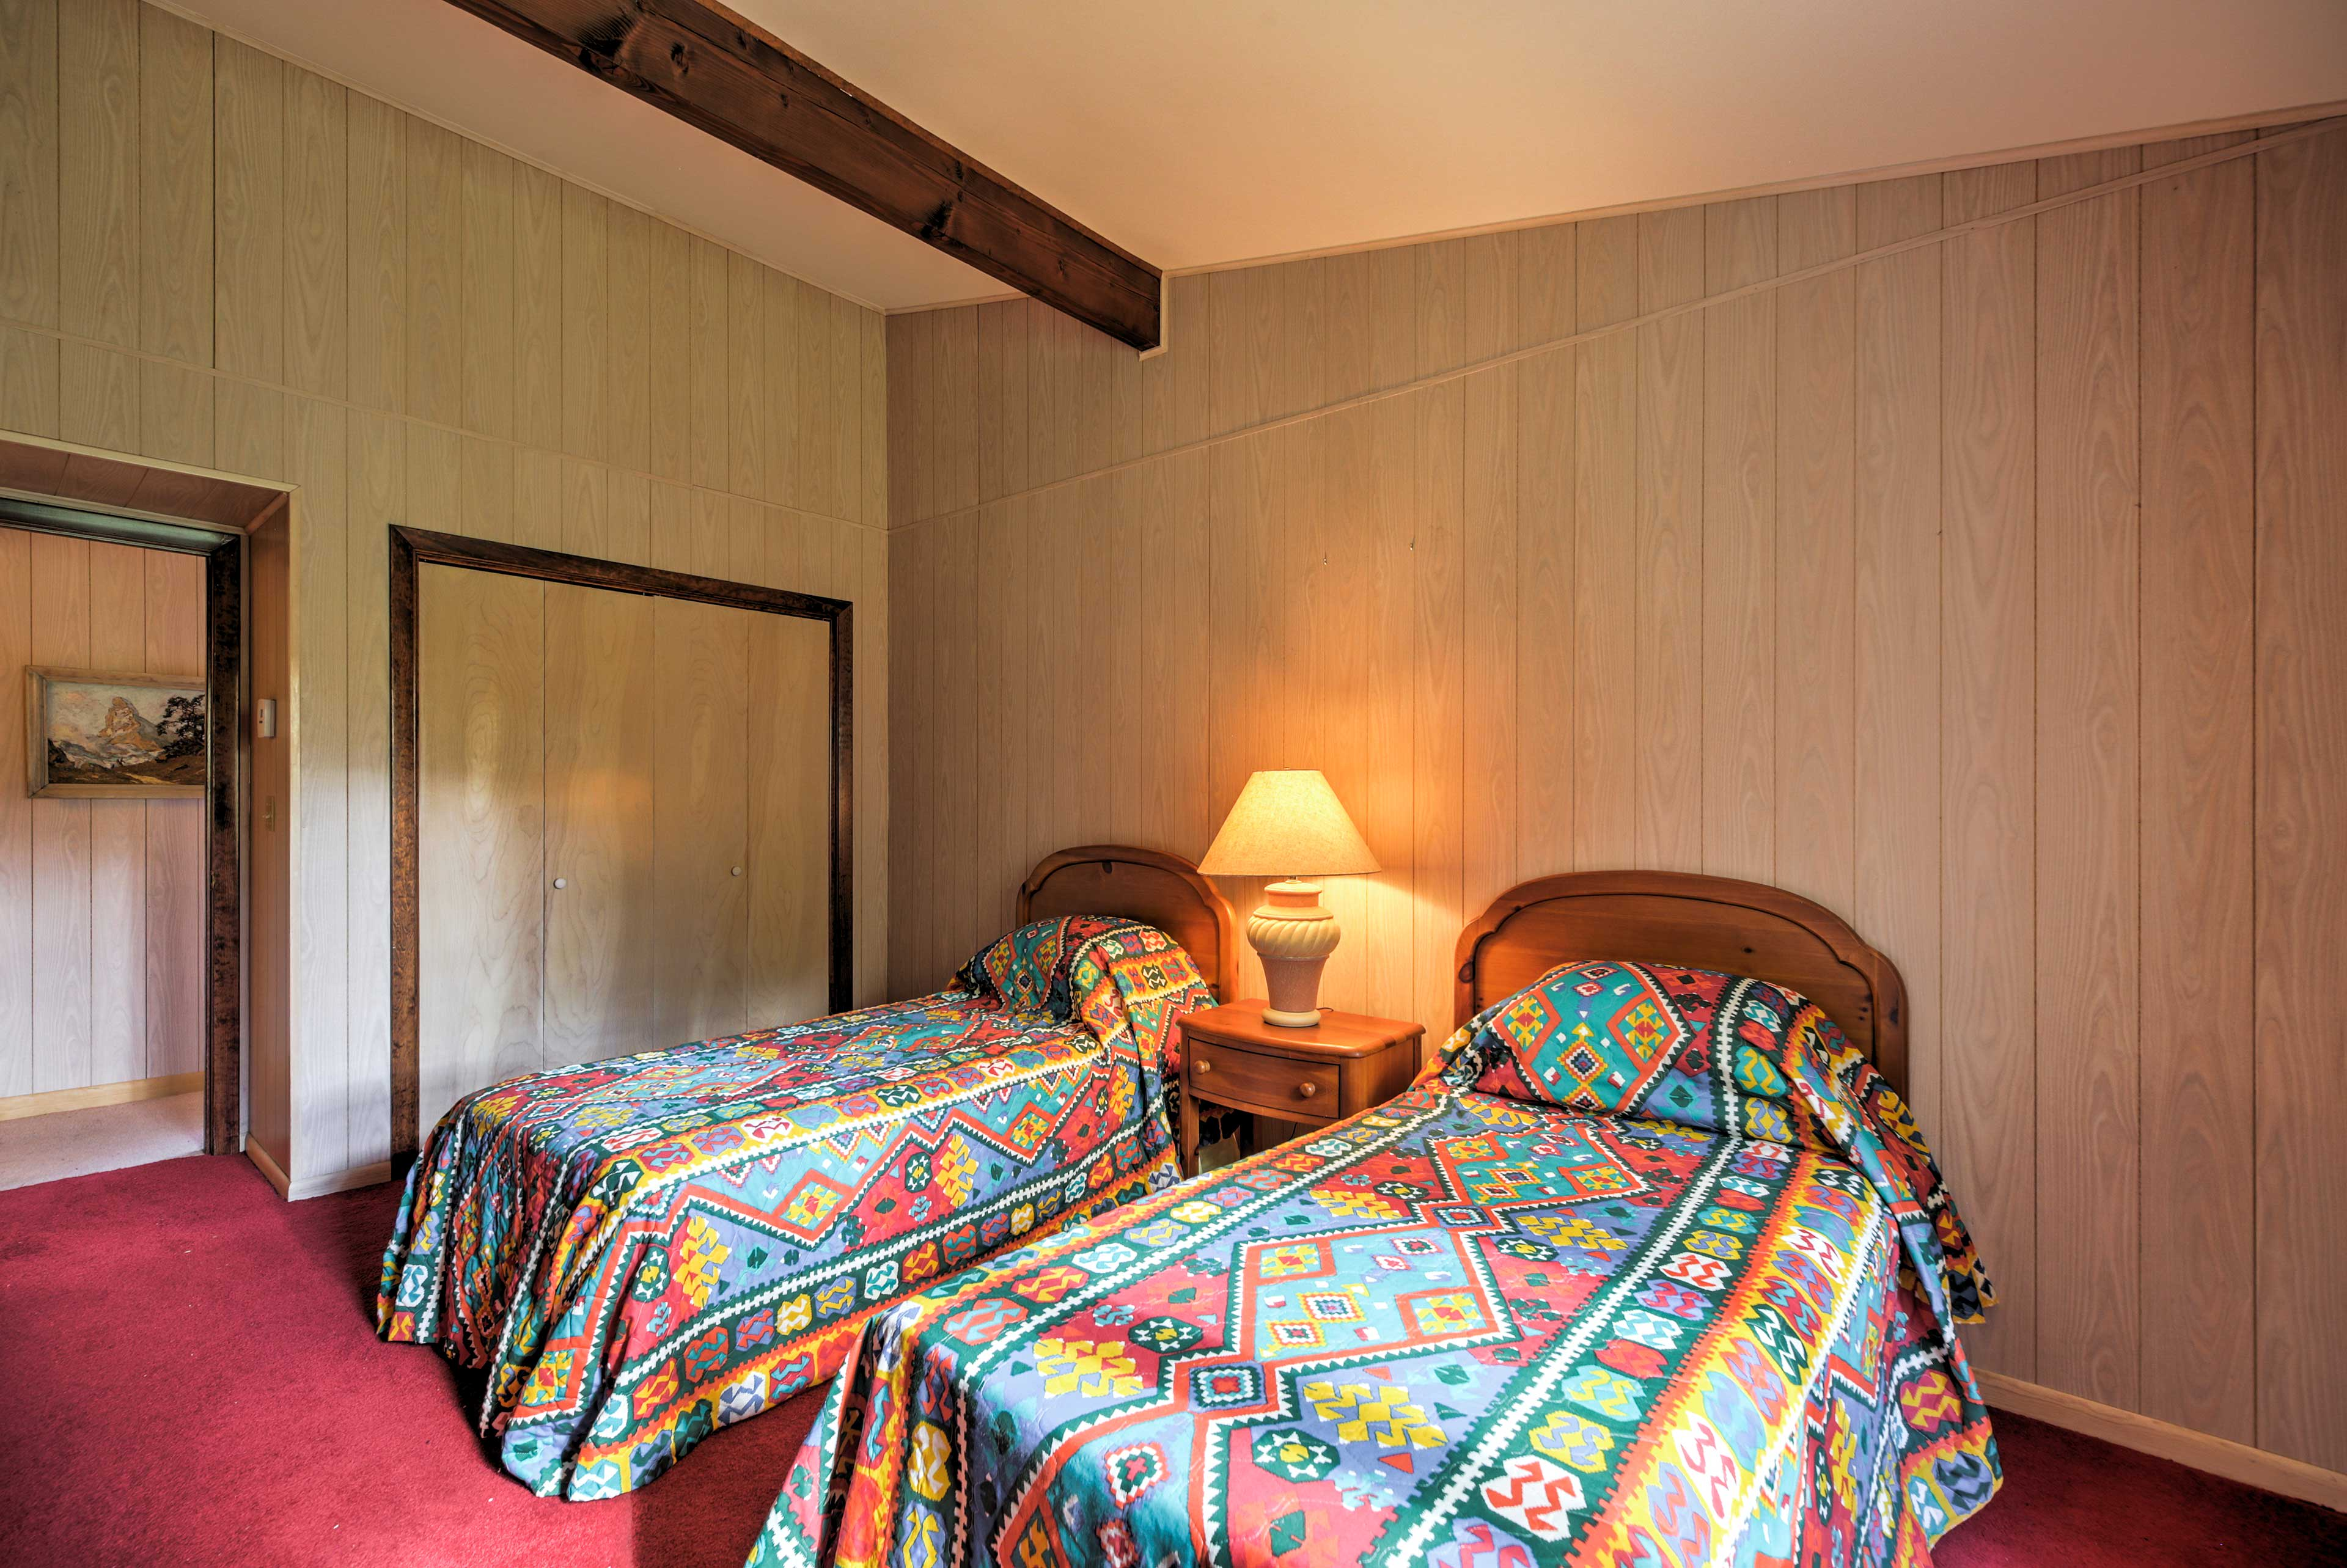 Two guests can enjoy peaceful slumbers on these twin beds.